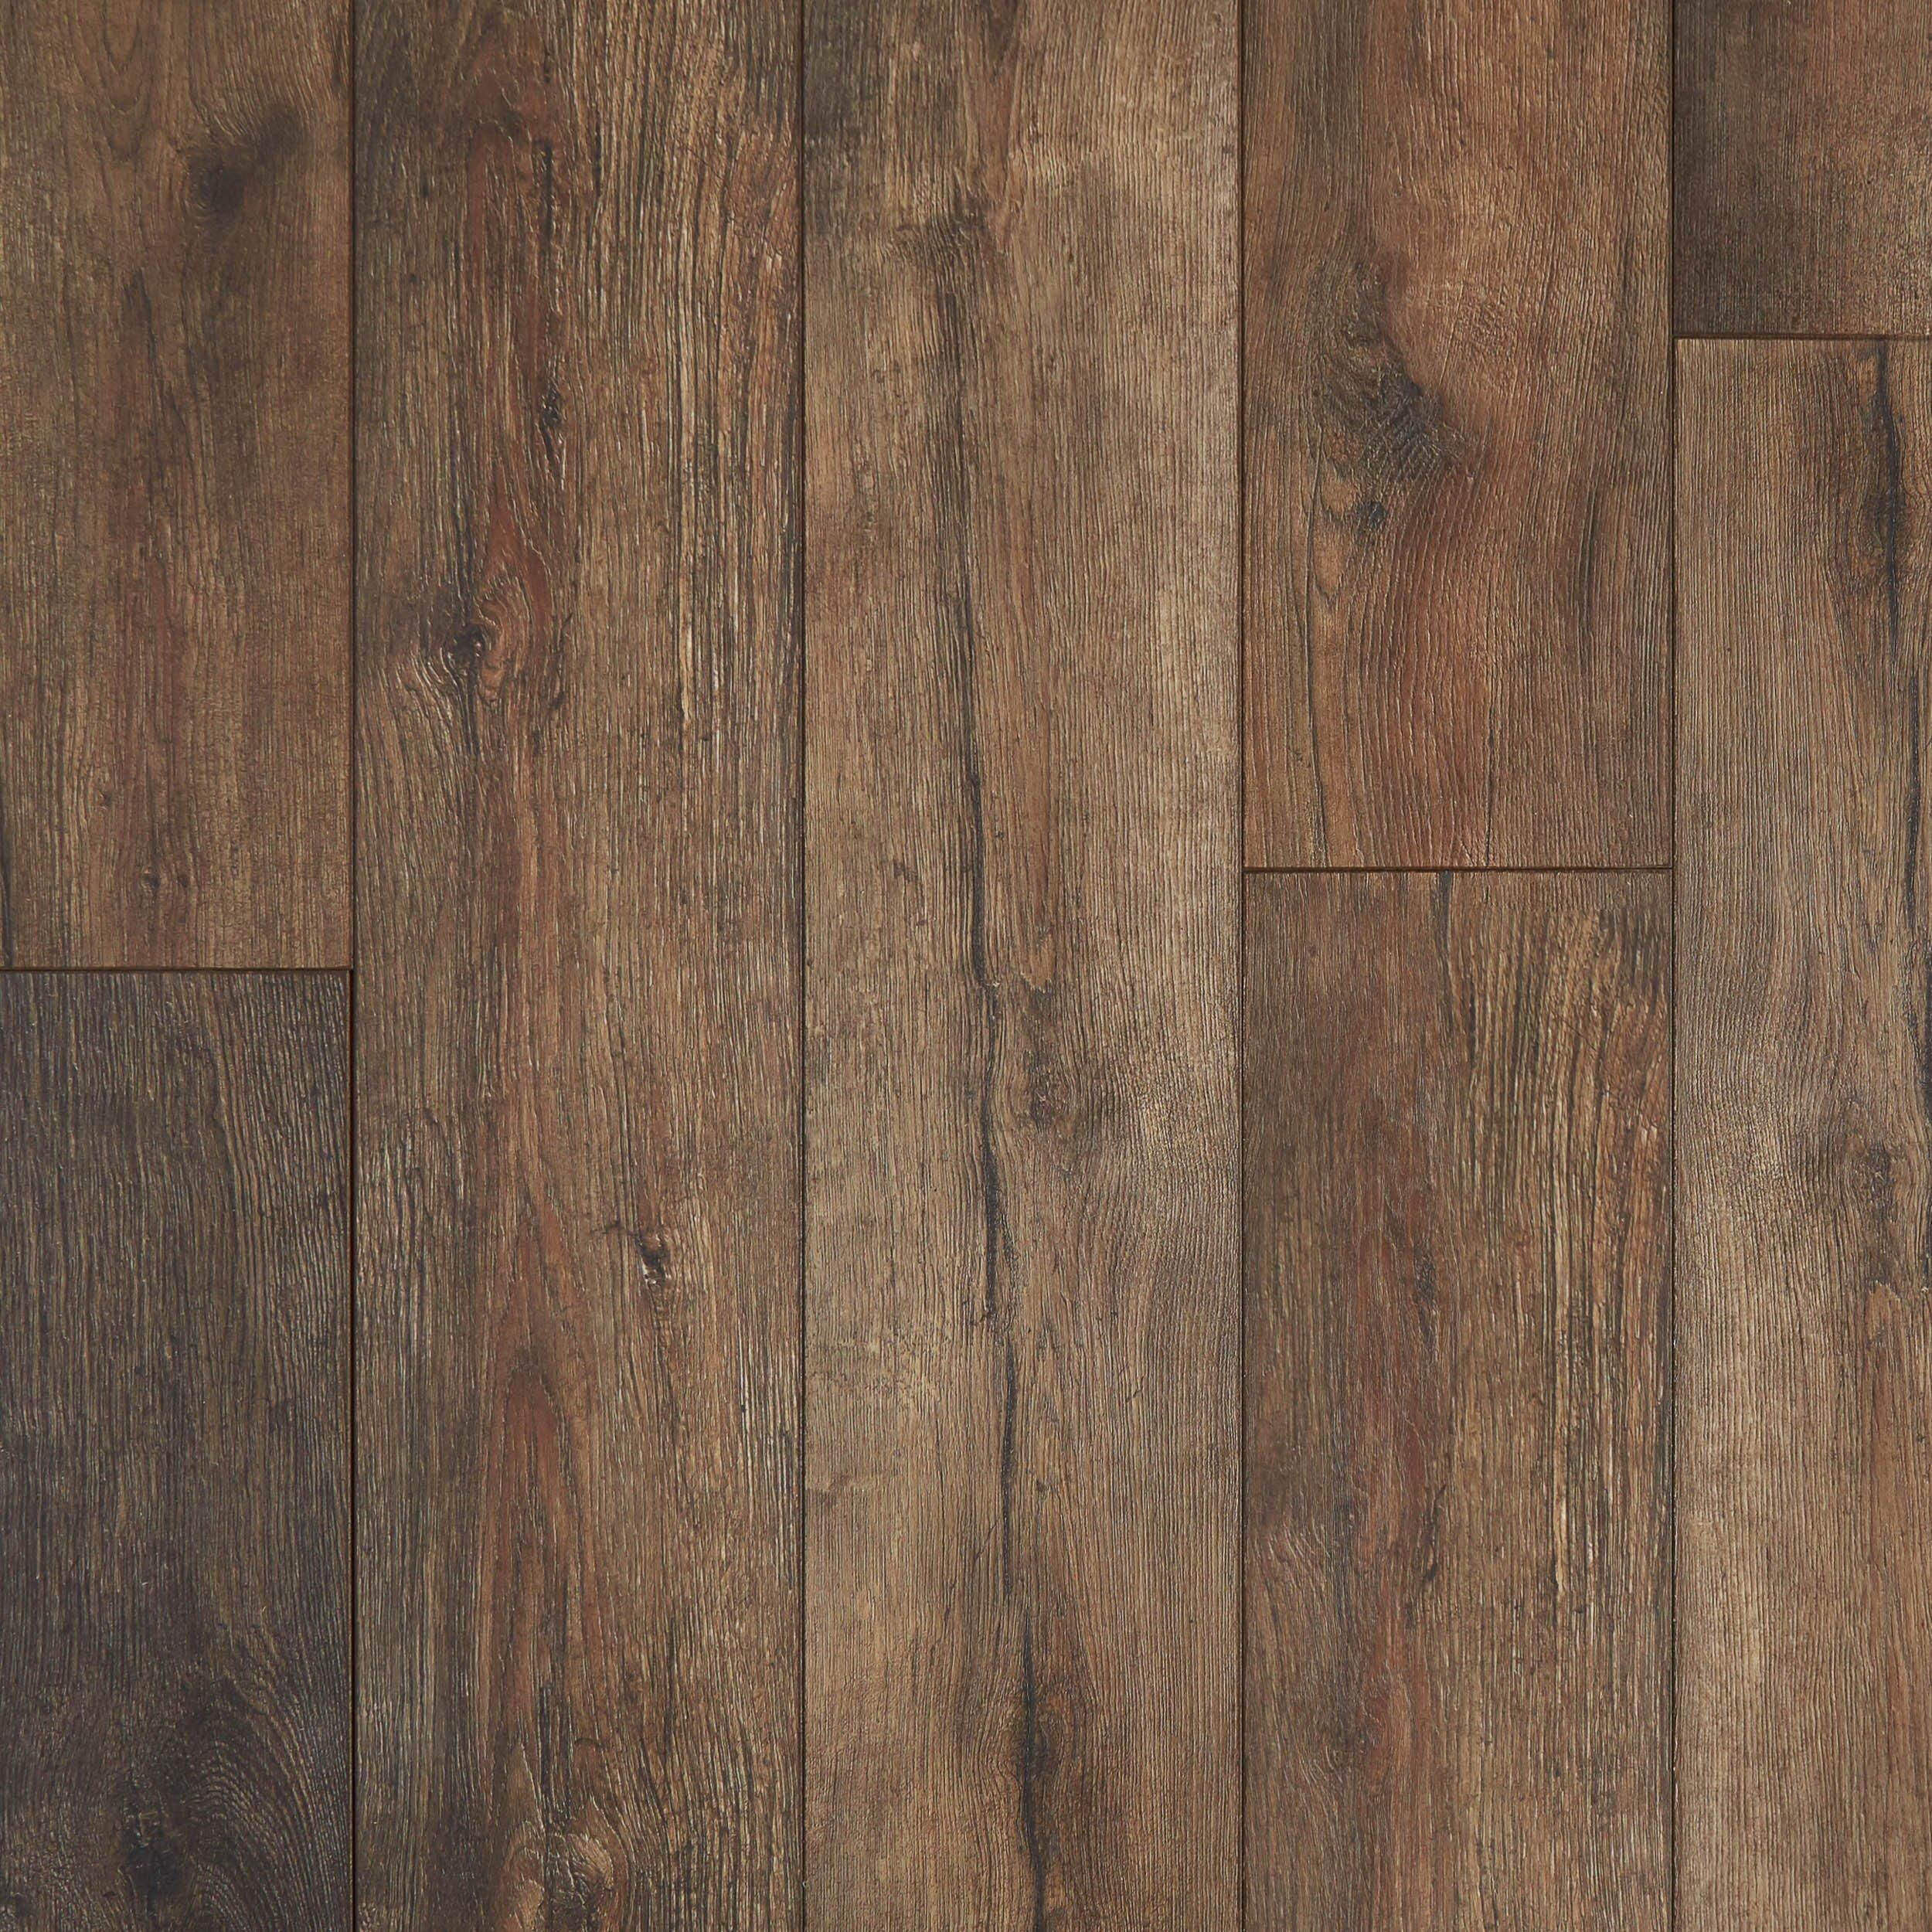 Tranquil Canyon Oak Water Resistant Laminate Products Basement Flooring